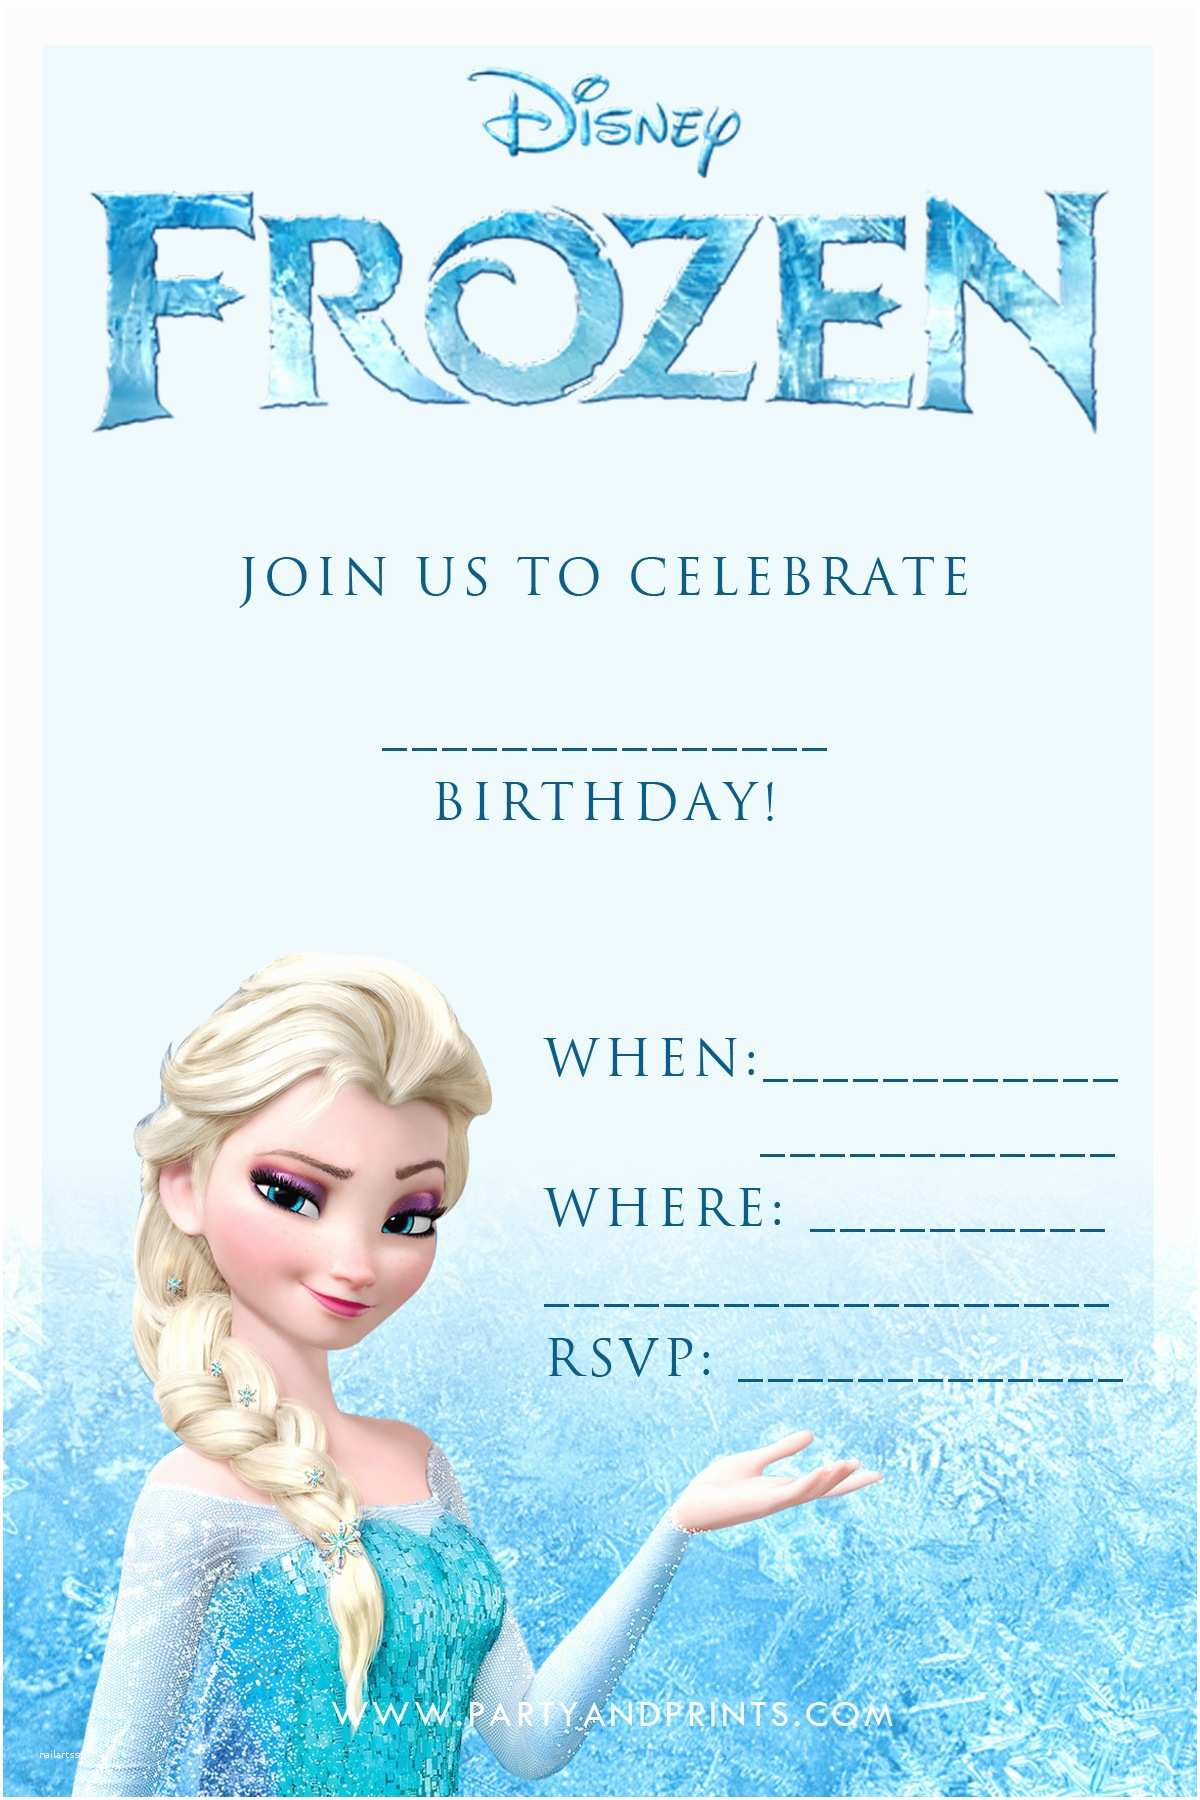 Frozen Invitations Printable Free Disney Birthday Invitations Free Printable Disney Frozen